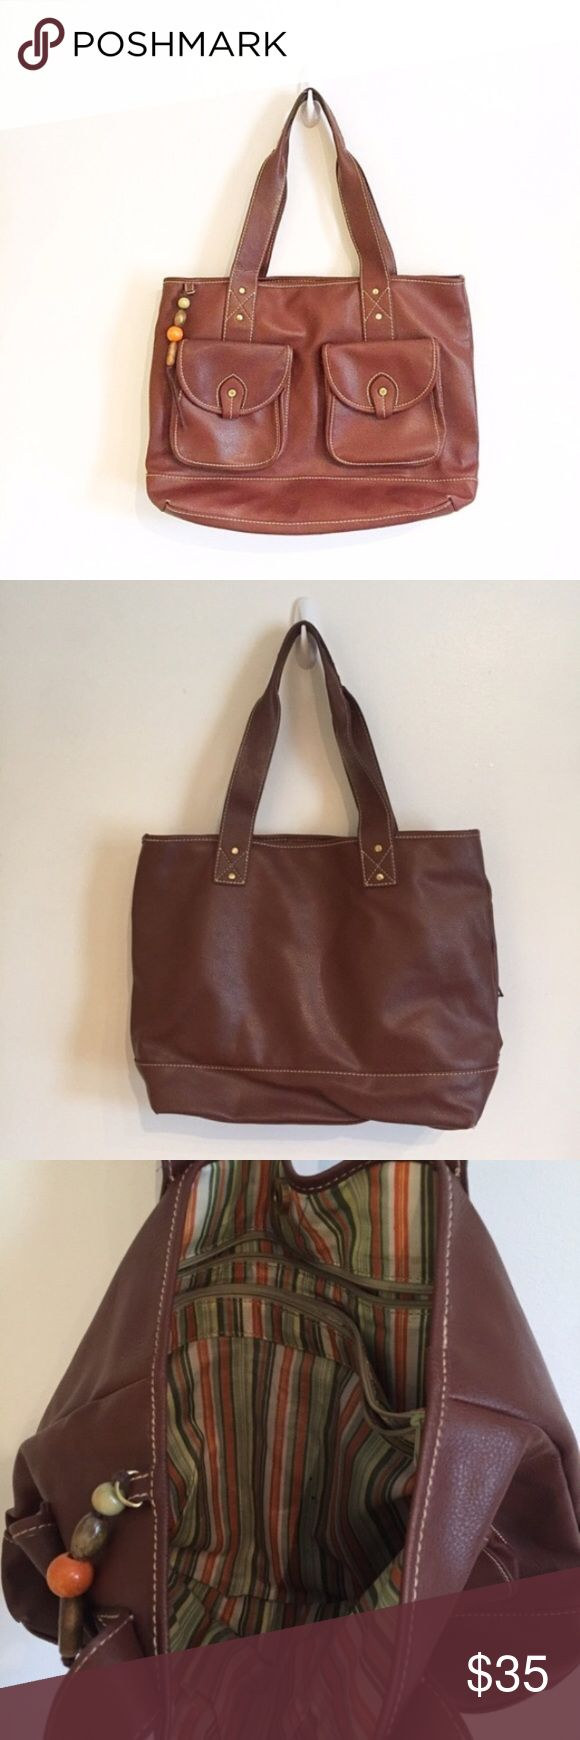 """RELIC by Fossil Brown Leather Tote Bag Purse Relic by Fossil. Big tote style purse with front pockets. Has a couple small pen marks and minor corner wear as shown in photos. Perfect everyday bag. Measures 16"""" Wide and 13"""" tall.  #relic #fossil #brown #earth #pocket #neutral #chic #tote #purse #basic #staple #leather #punkydoodle  No modeling Smoke free home I do discount bundles Relic Bags Totes"""